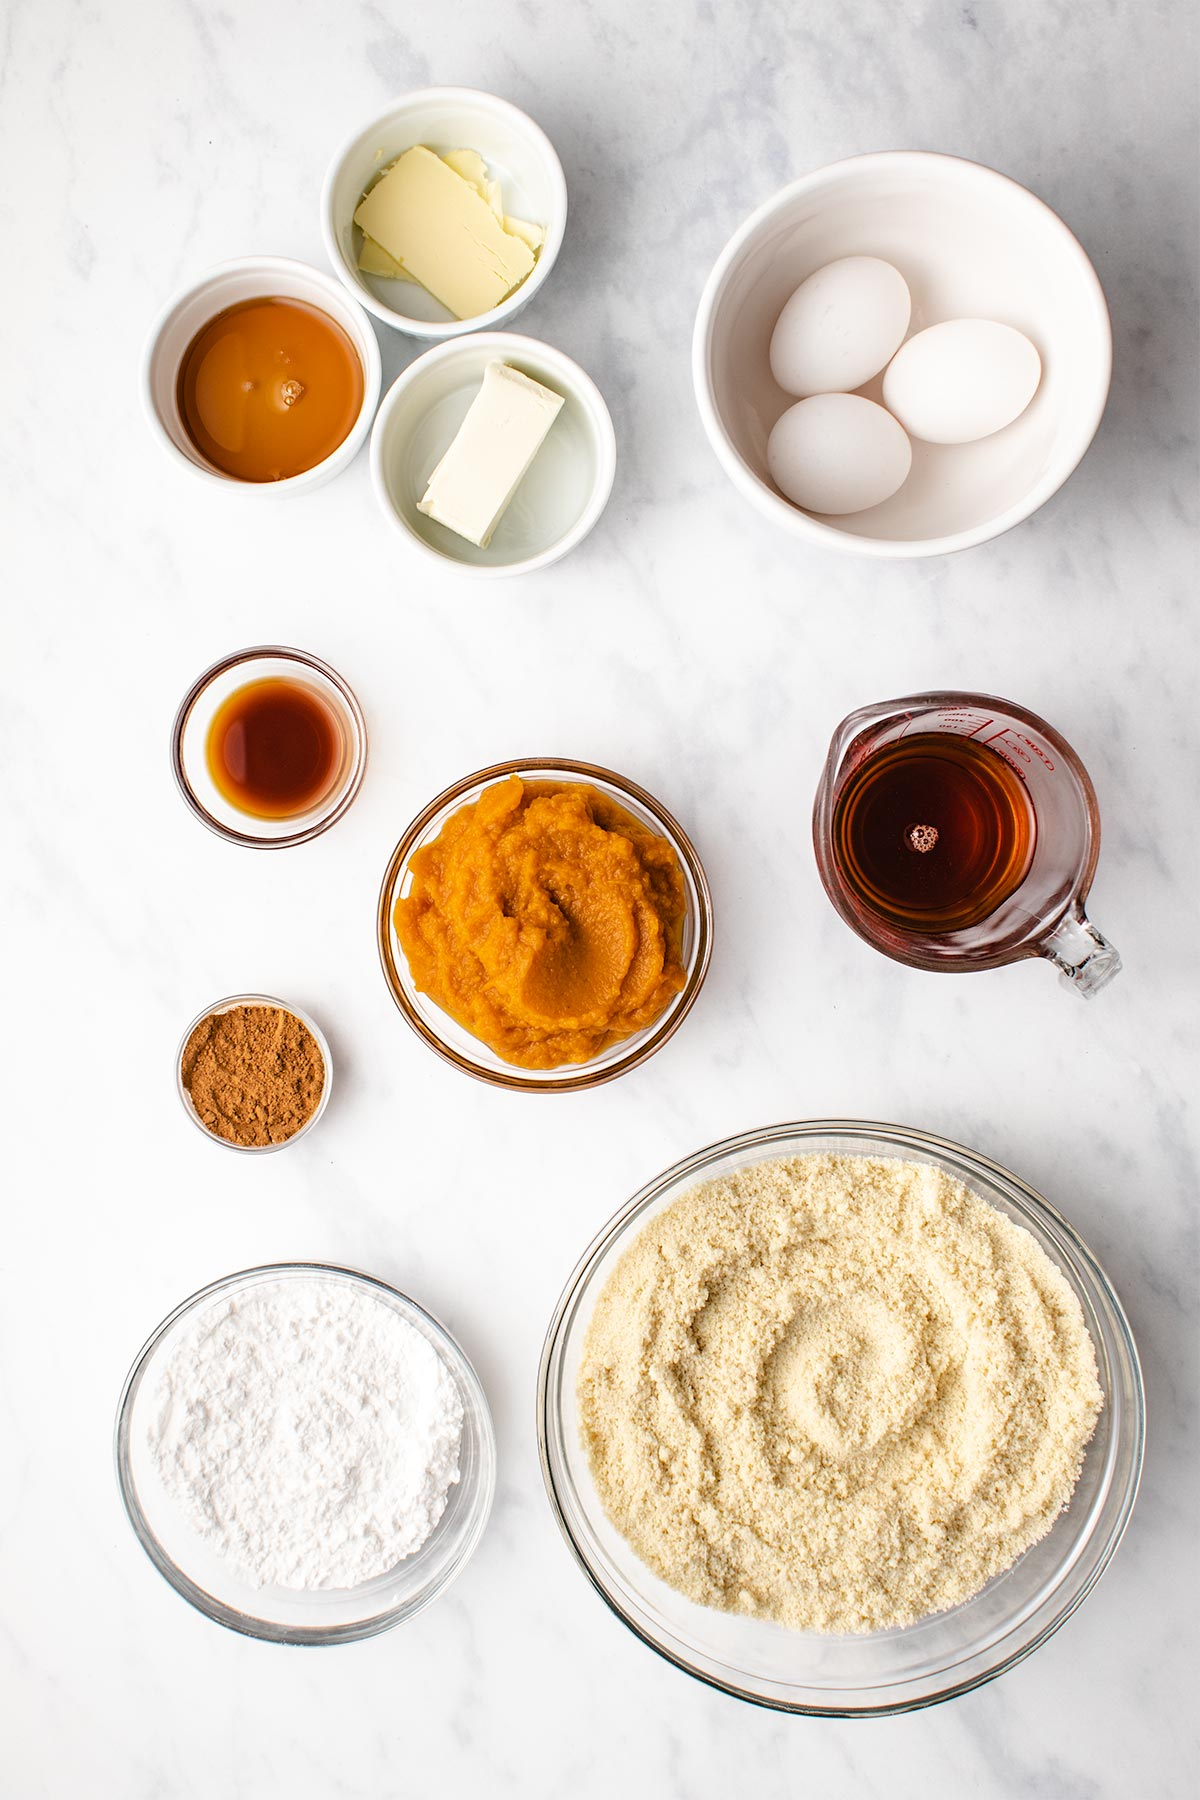 Ingredients needed for almond flour pumpkin bread in bowls viewed from overhead.